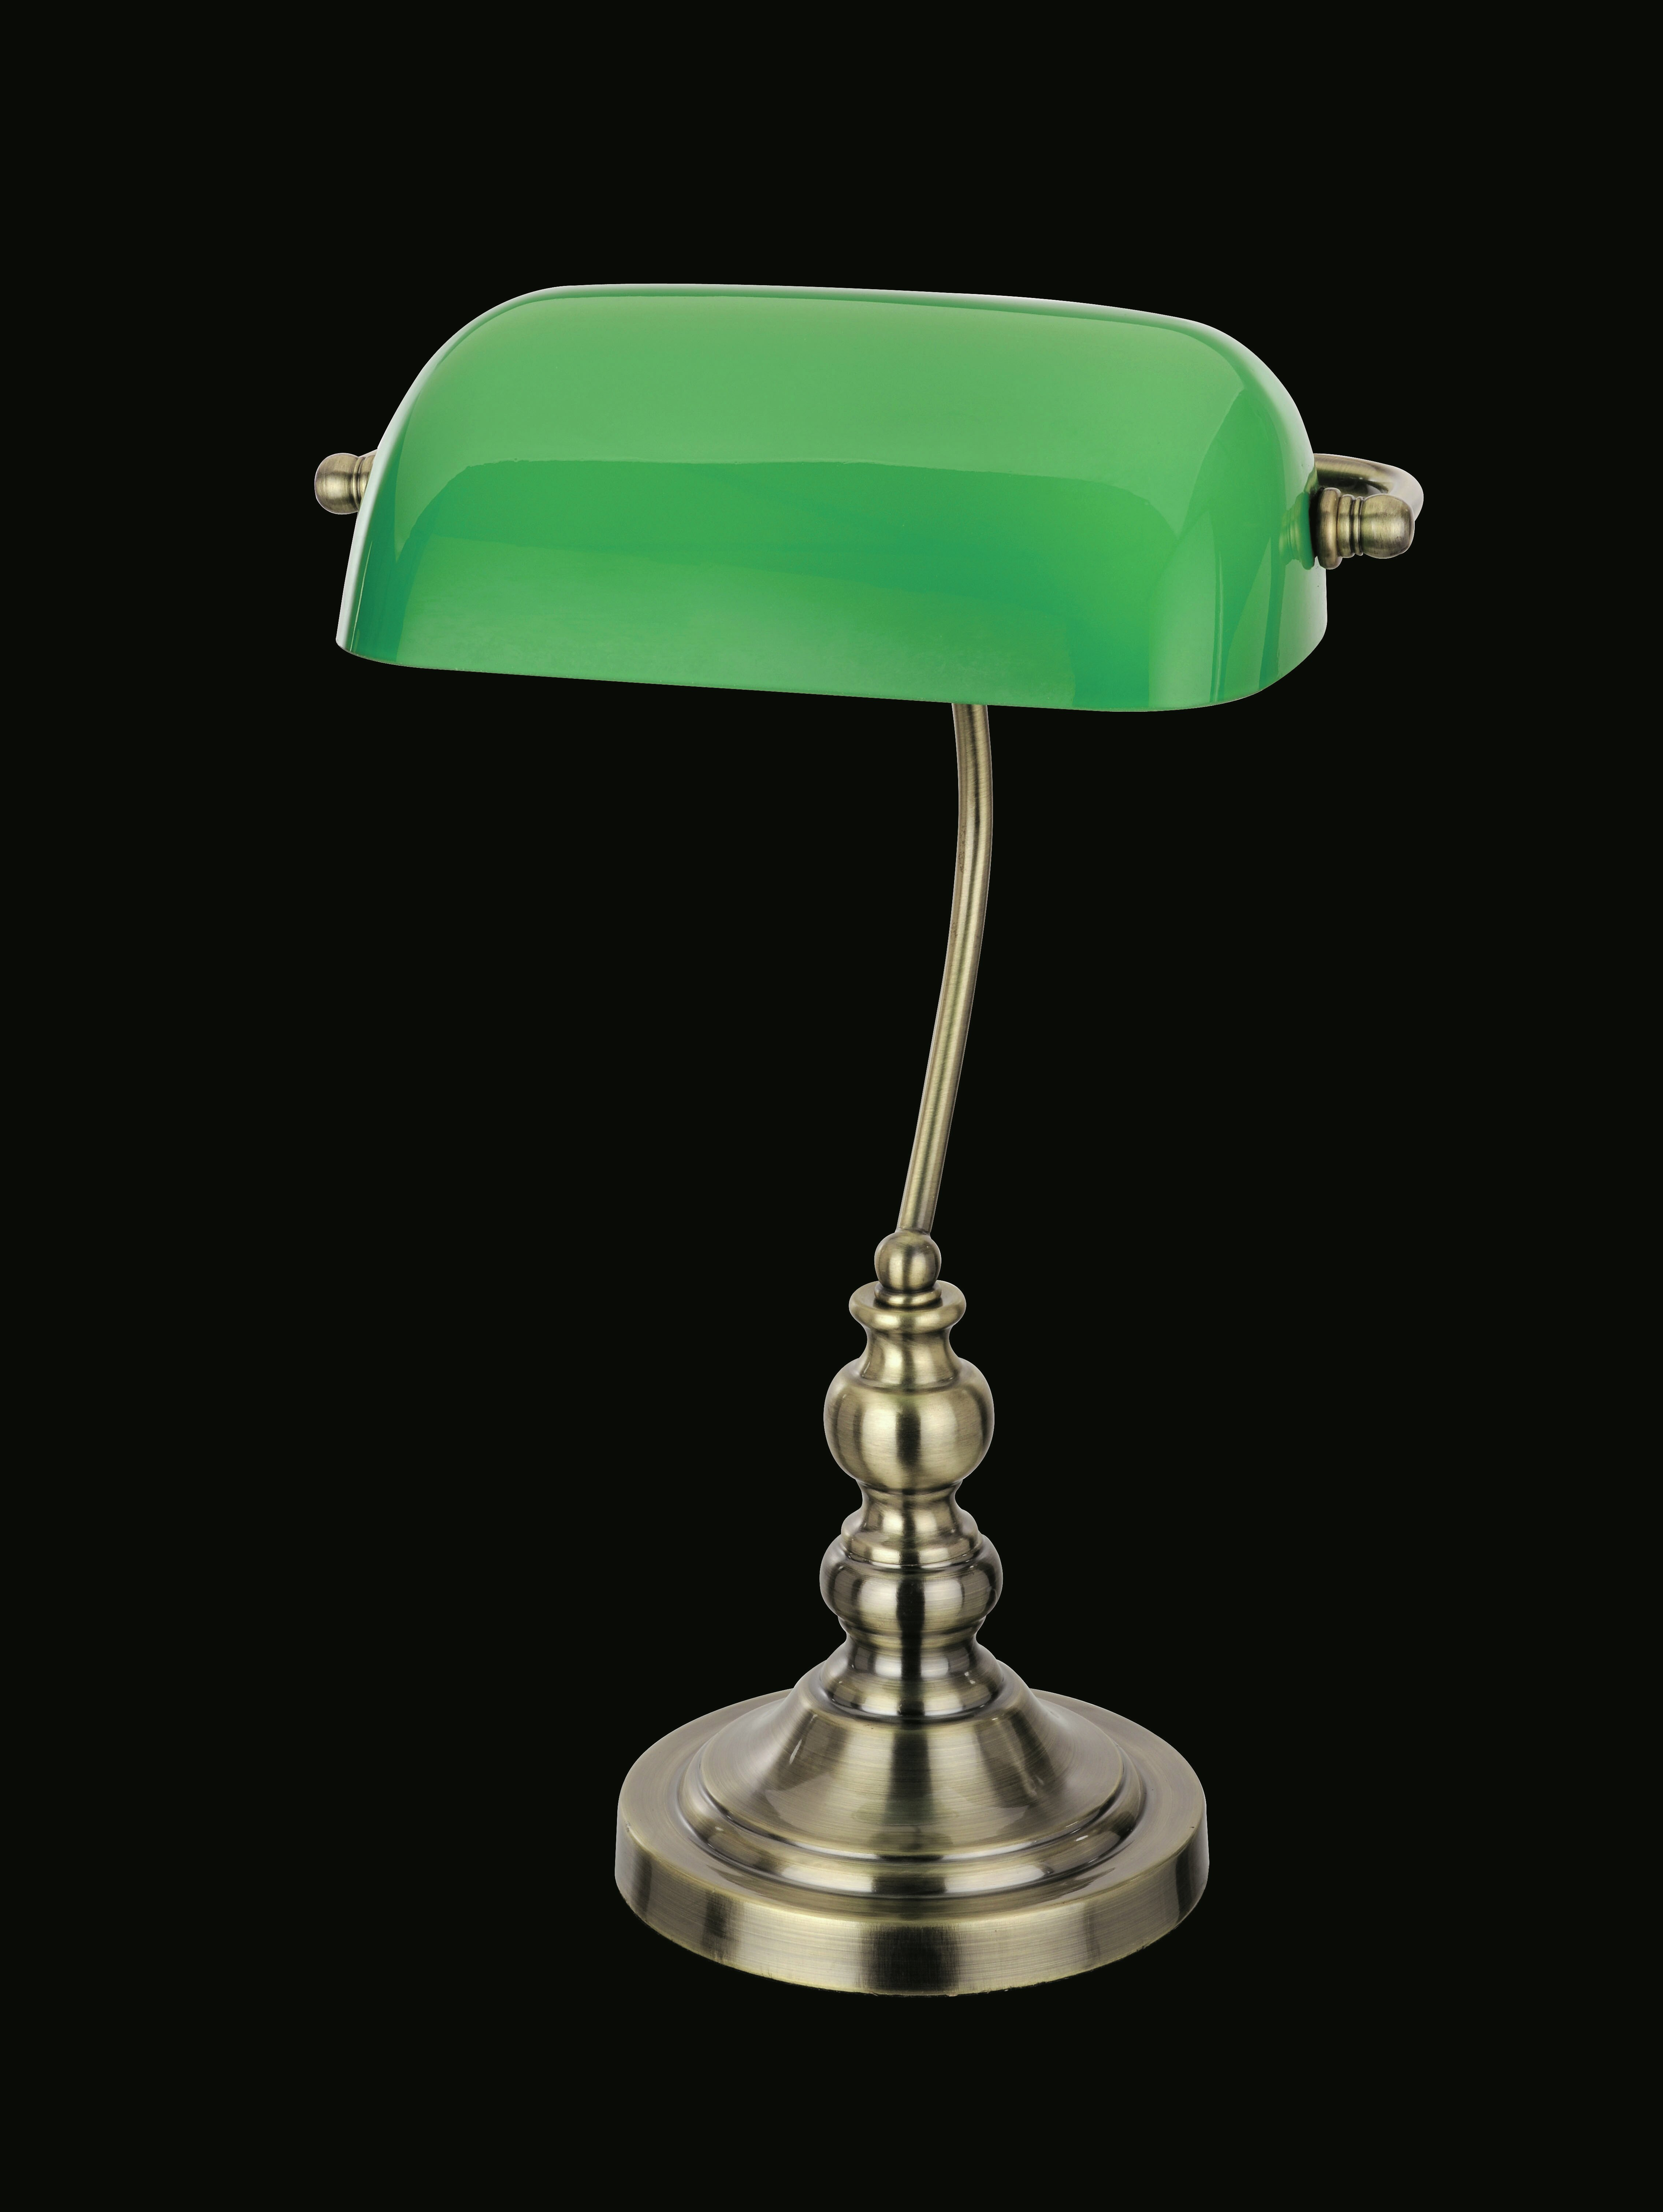 of nsyd pict remarkable bankers vintage pic lighting concept trends u amazing style brass banker inspire green antique home ideas and desk inspiring lamp